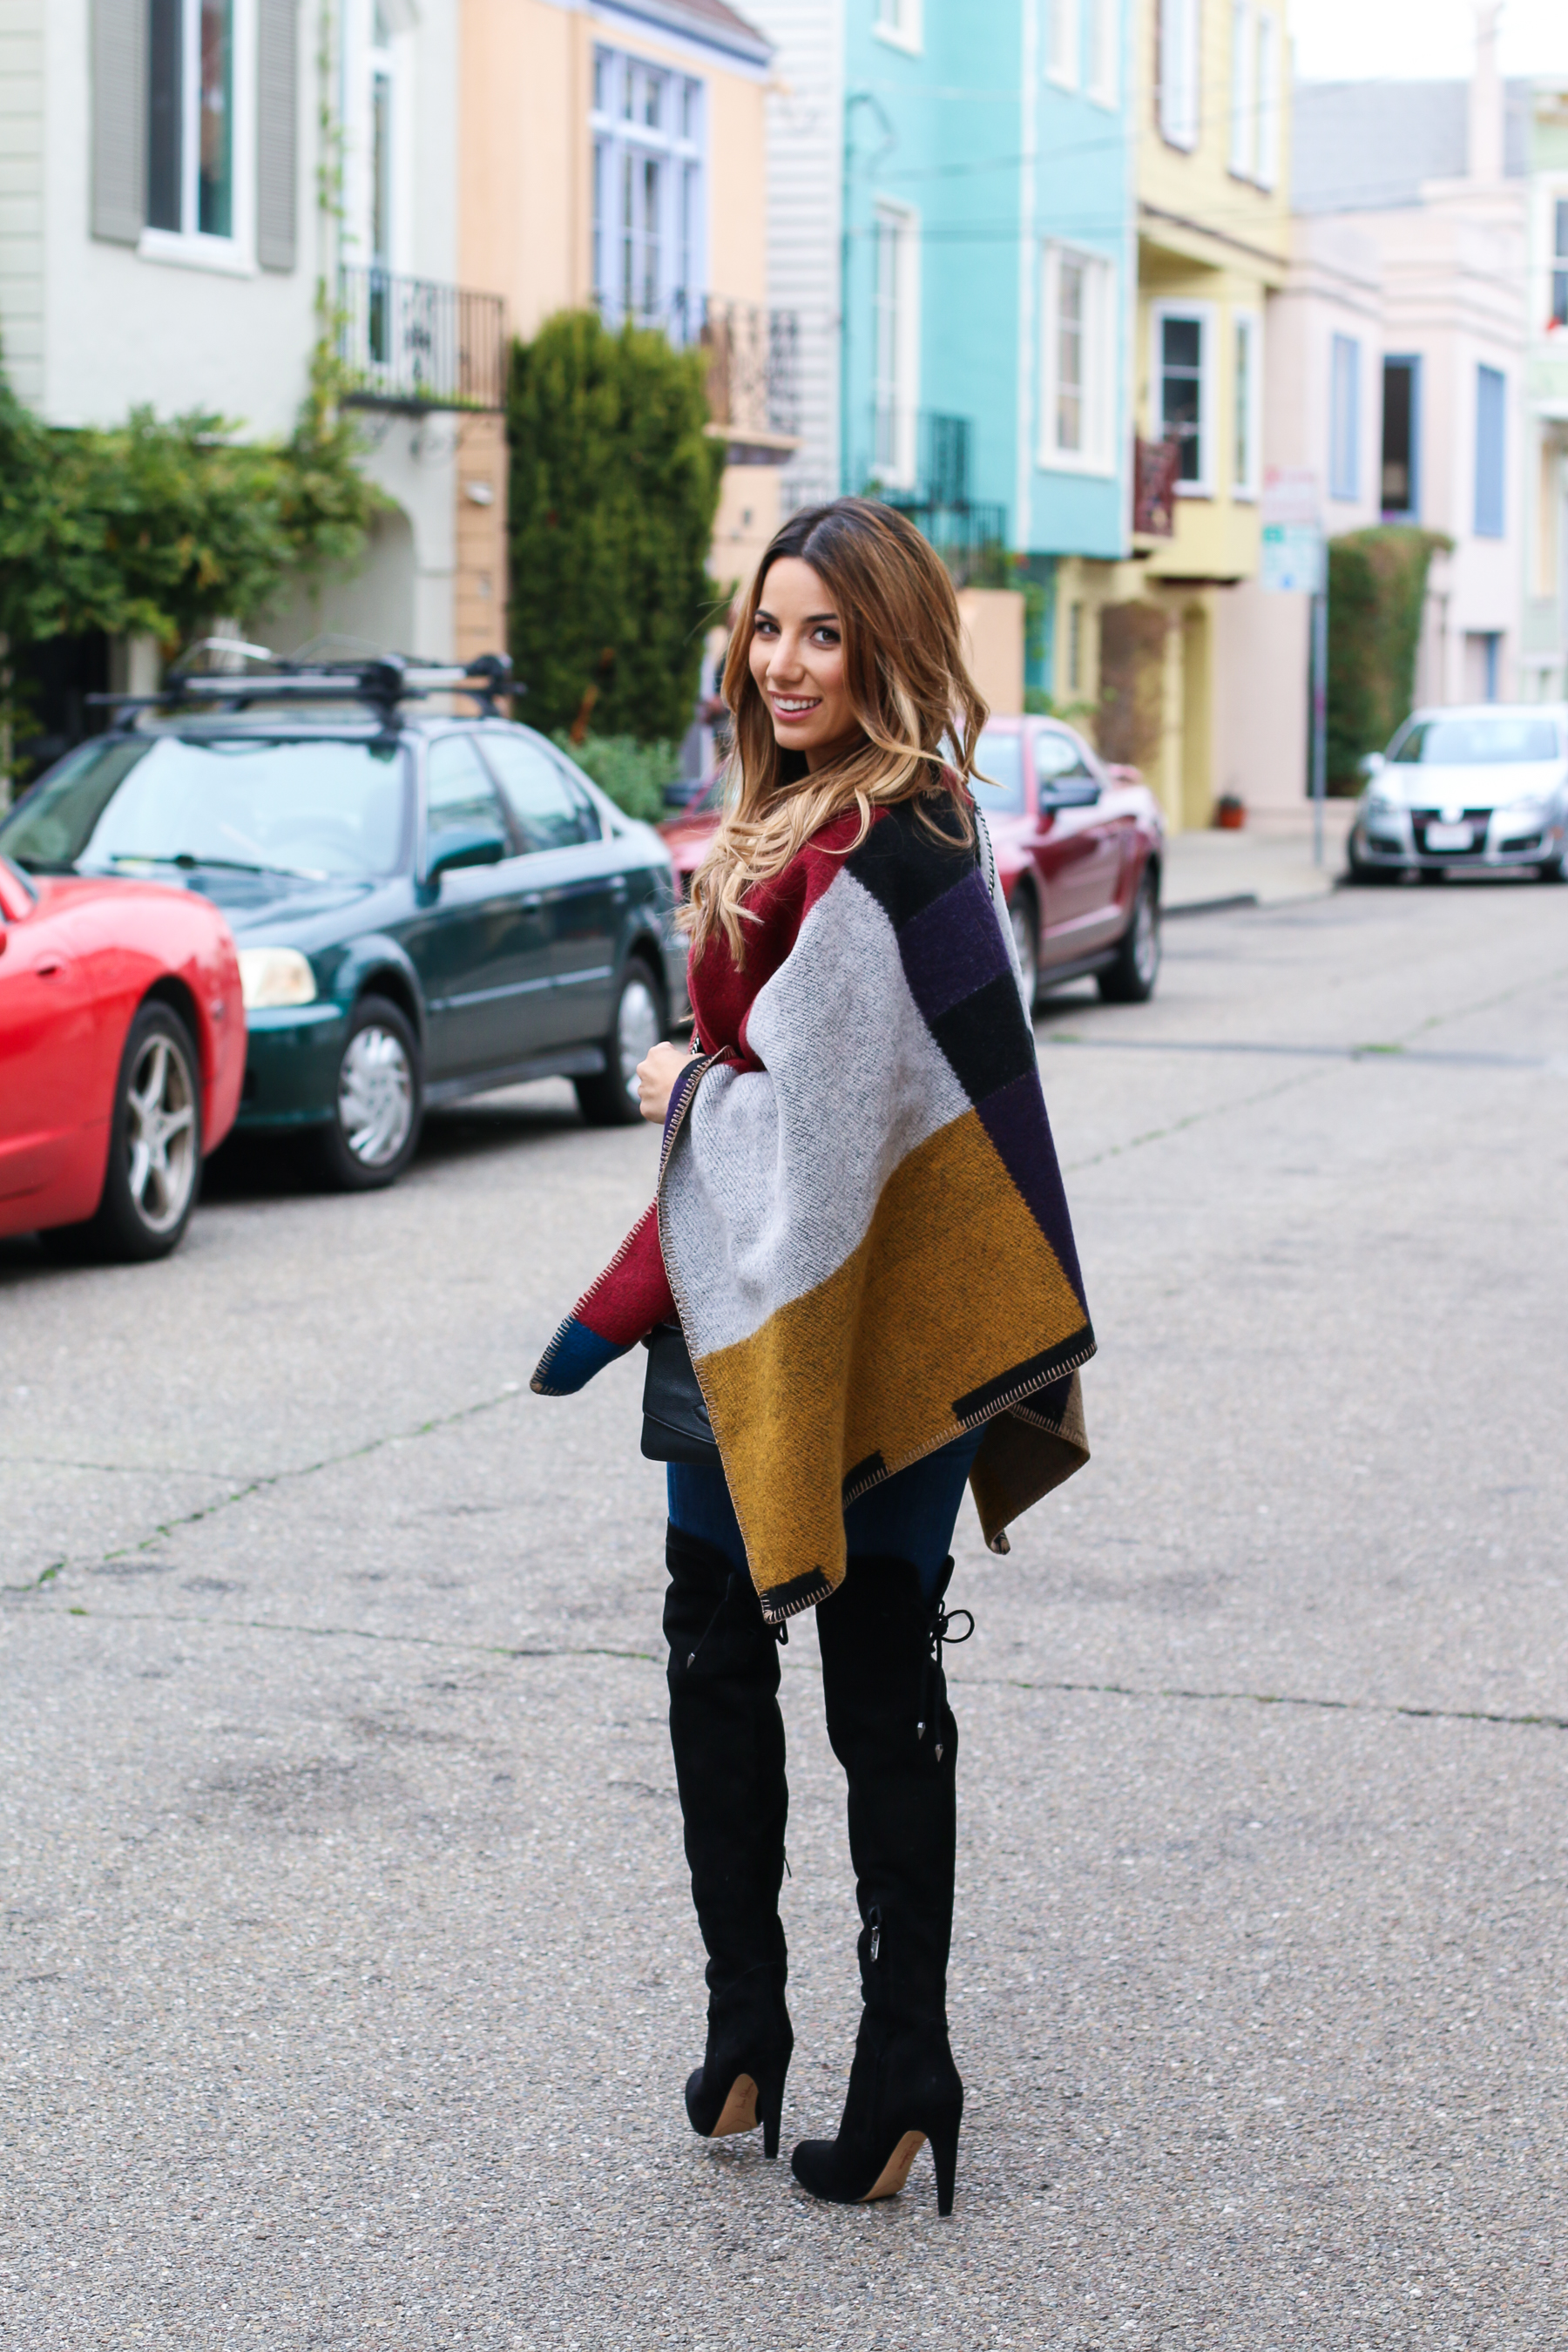 Ariana-Lauren-Fashion-Born-Blogger-Burberry-Poncho-Fall-Trends-Mission-District-San-Francisco-Photography-by-Ryan-Chua-7023